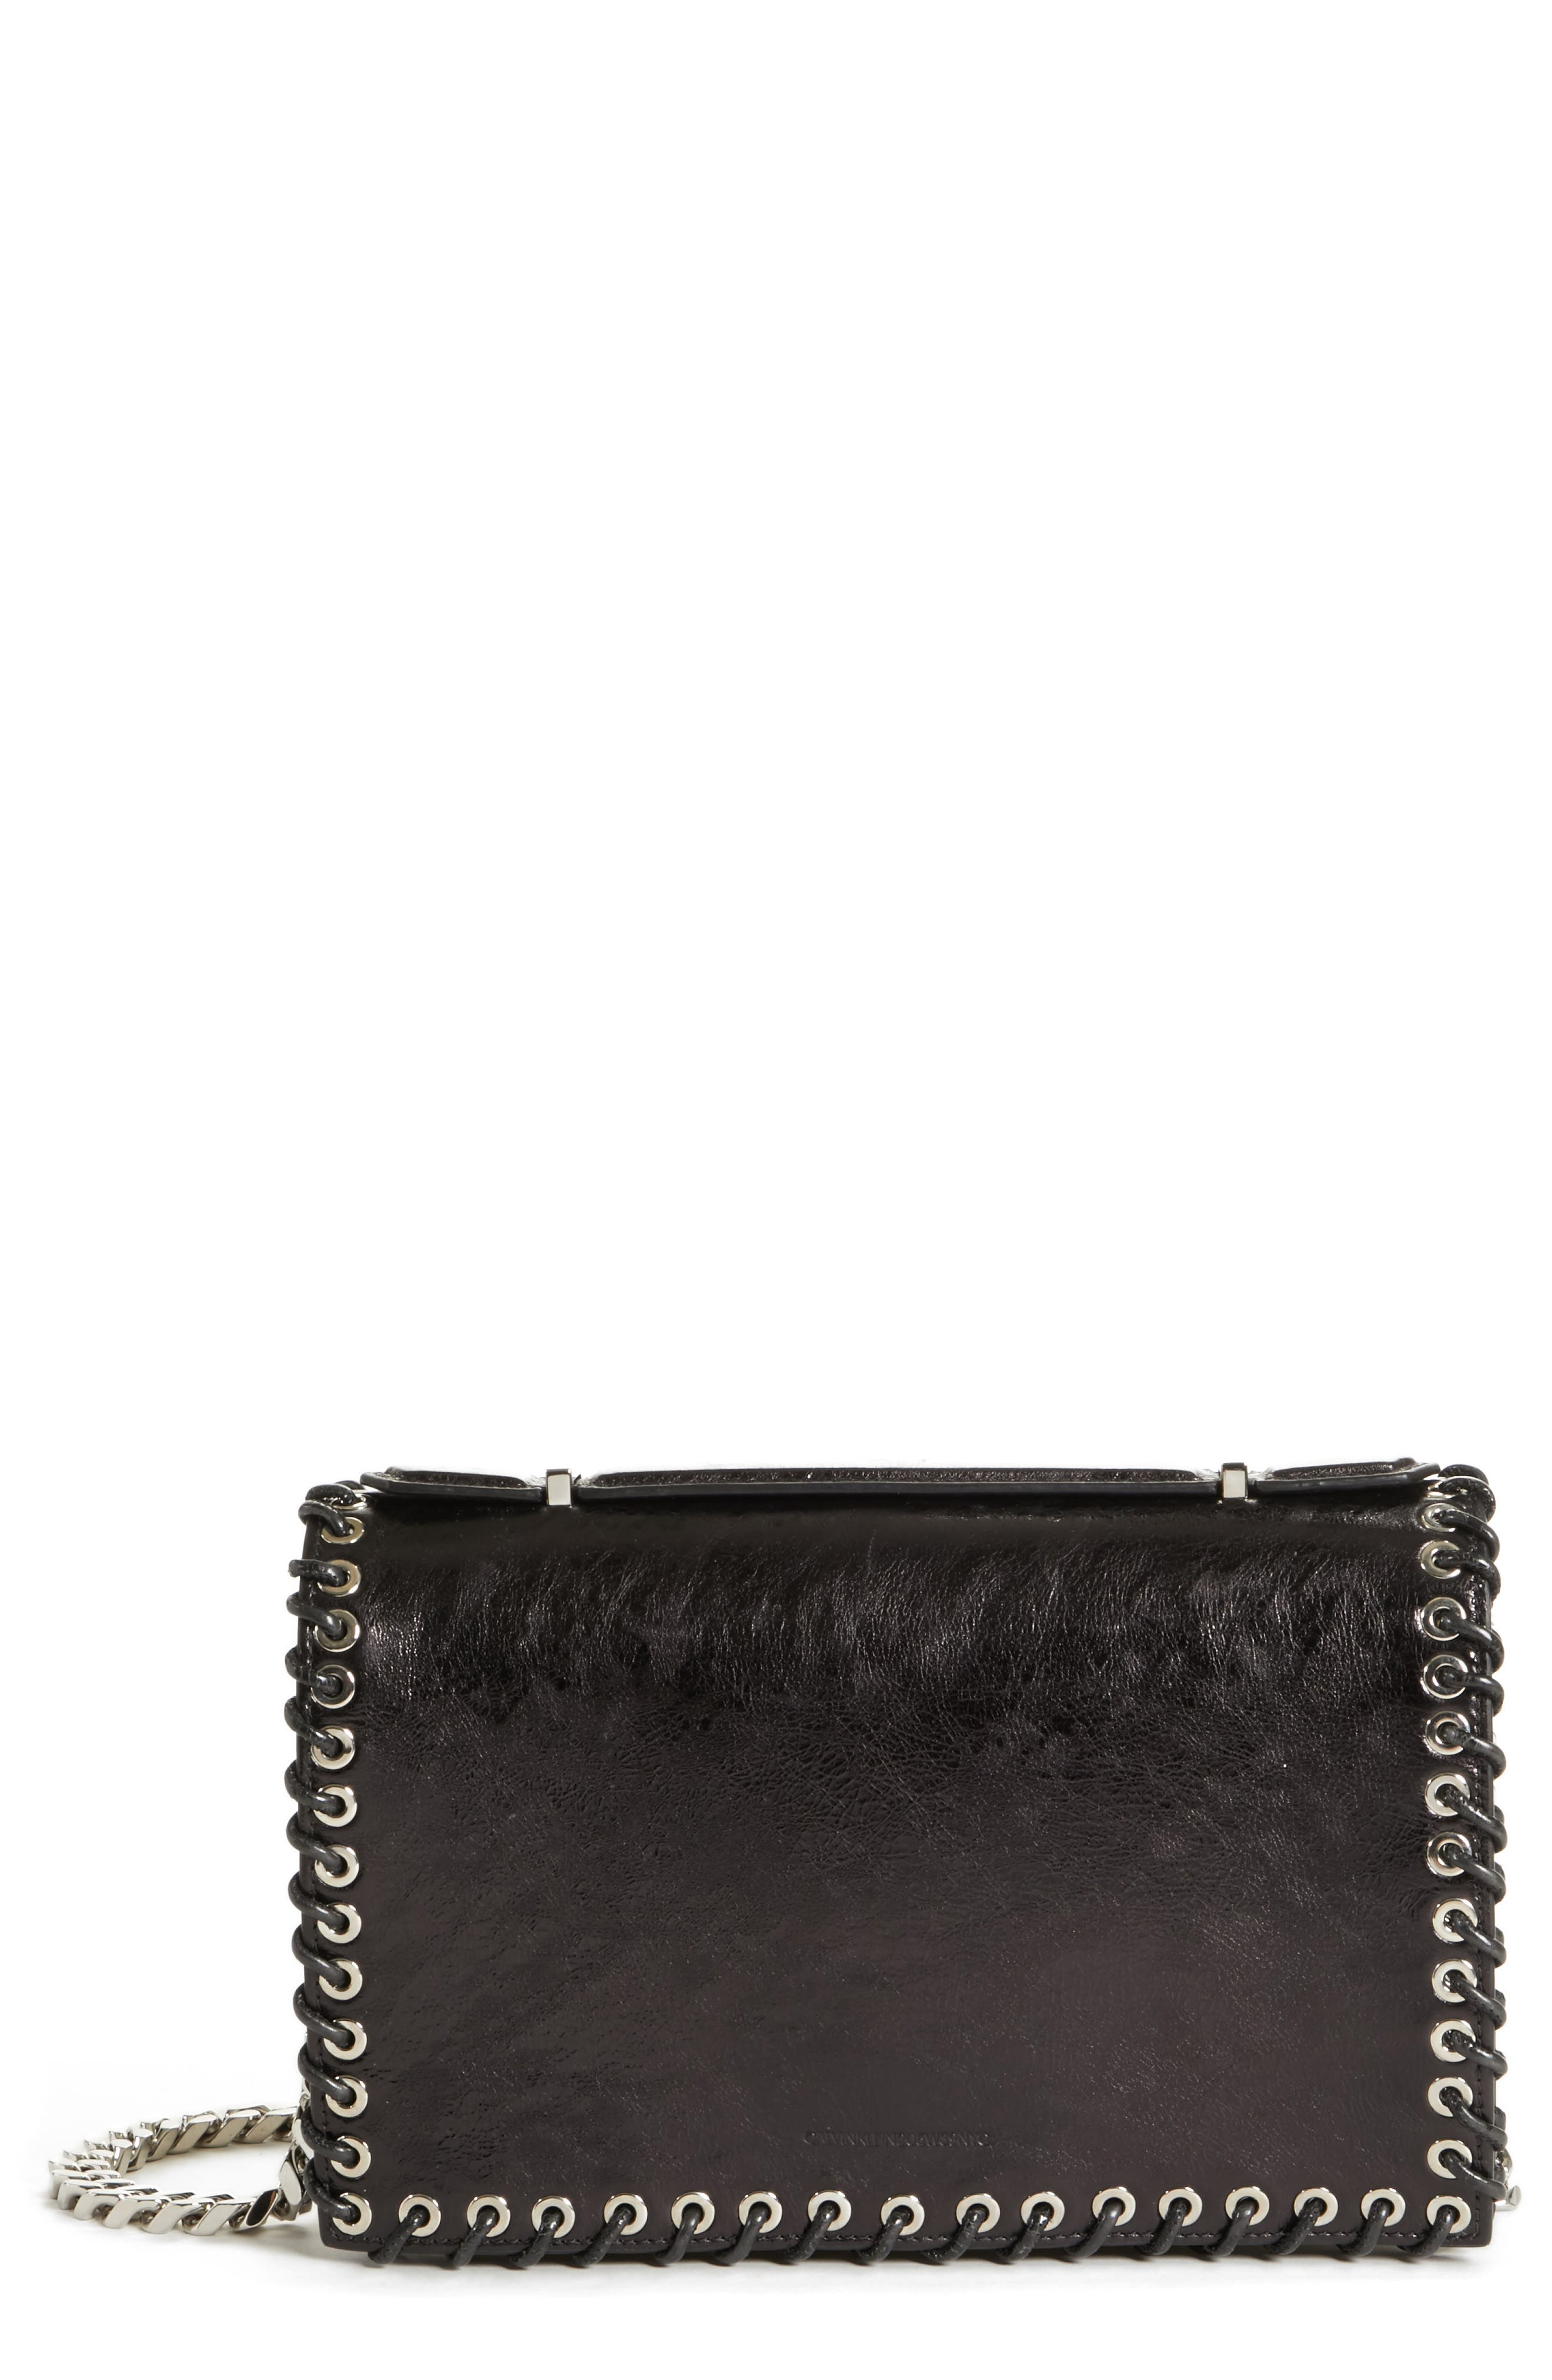 Main Image - CALVIN KLEIN 205W39NYC Whipstitch Leather Shoulder Bag